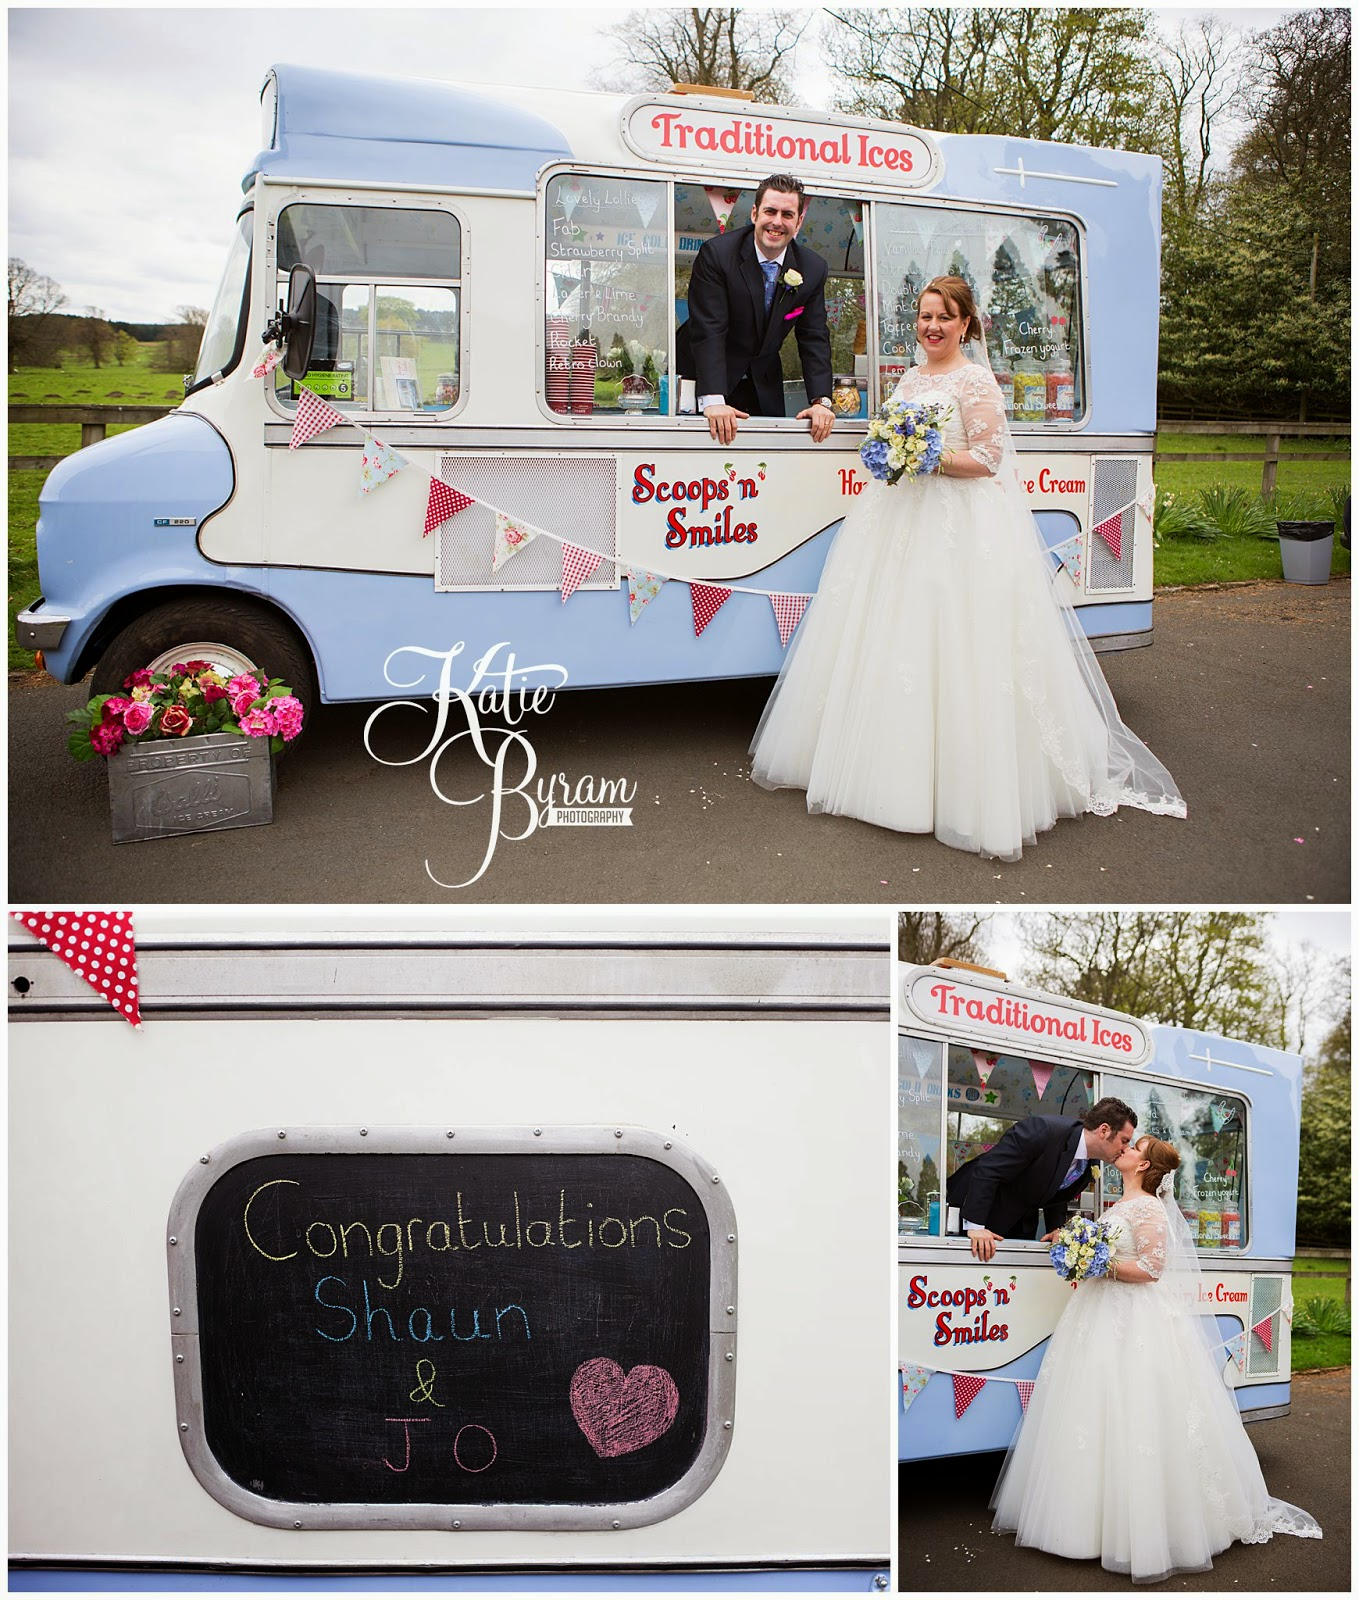 scoops and smiles, minsteracres wedding, lord crewe arms wedding, dog at wedding, scoops and smiles, katie byram photography, ice cream van hire newcastle, newcastle wedding photography, relaxed wedding photography, quirky, 50